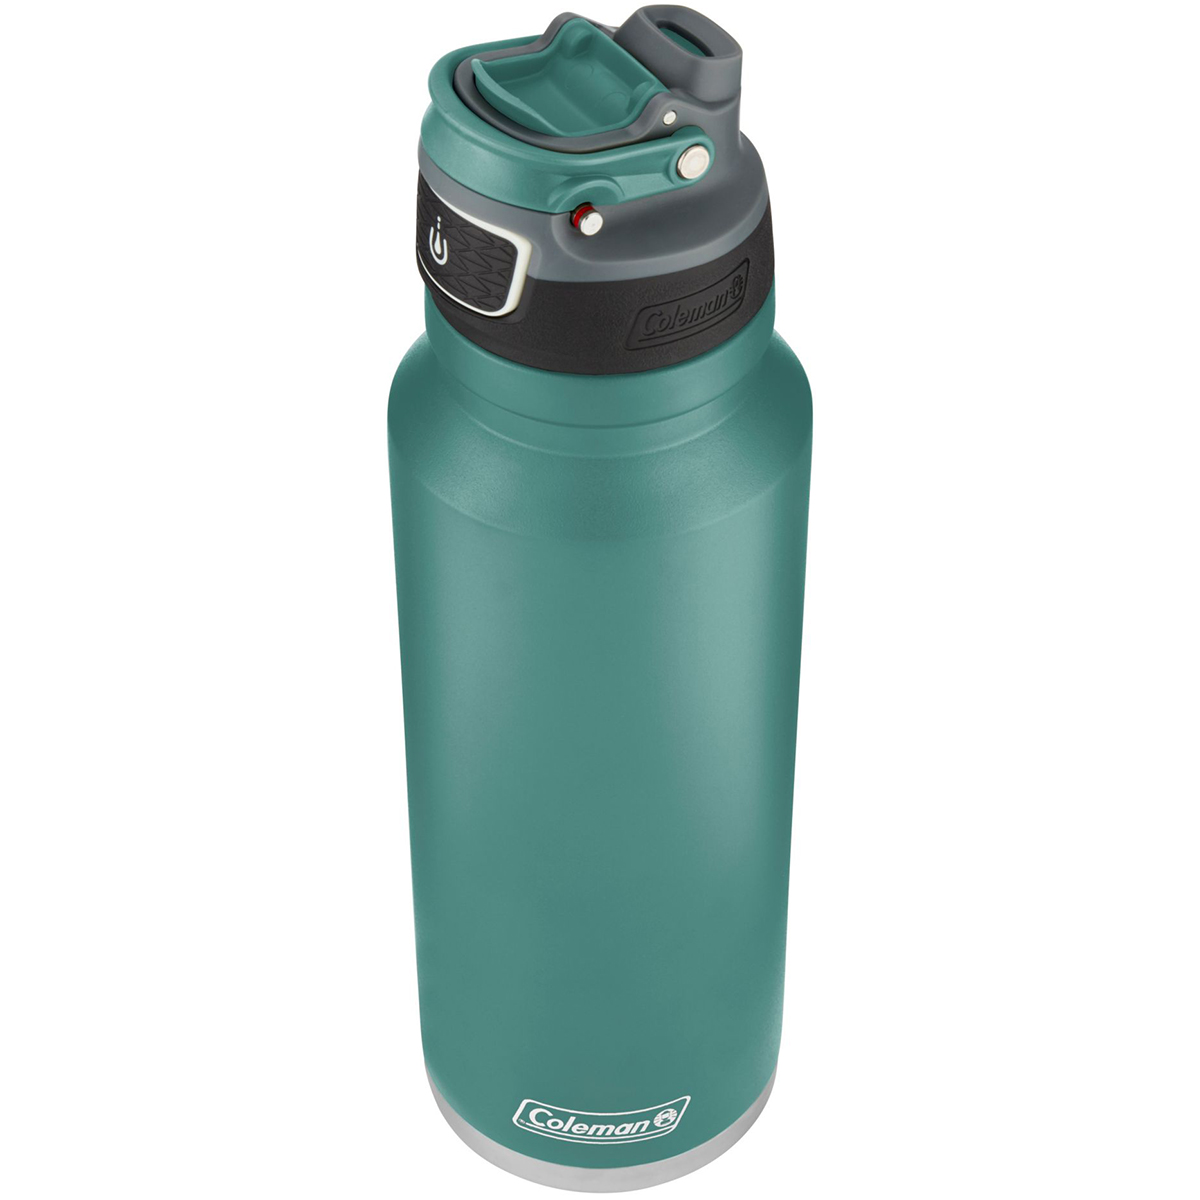 thumbnail 20 - Coleman 40 oz. Free Flow Autoseal Insulated Stainless Steel Water Bottle